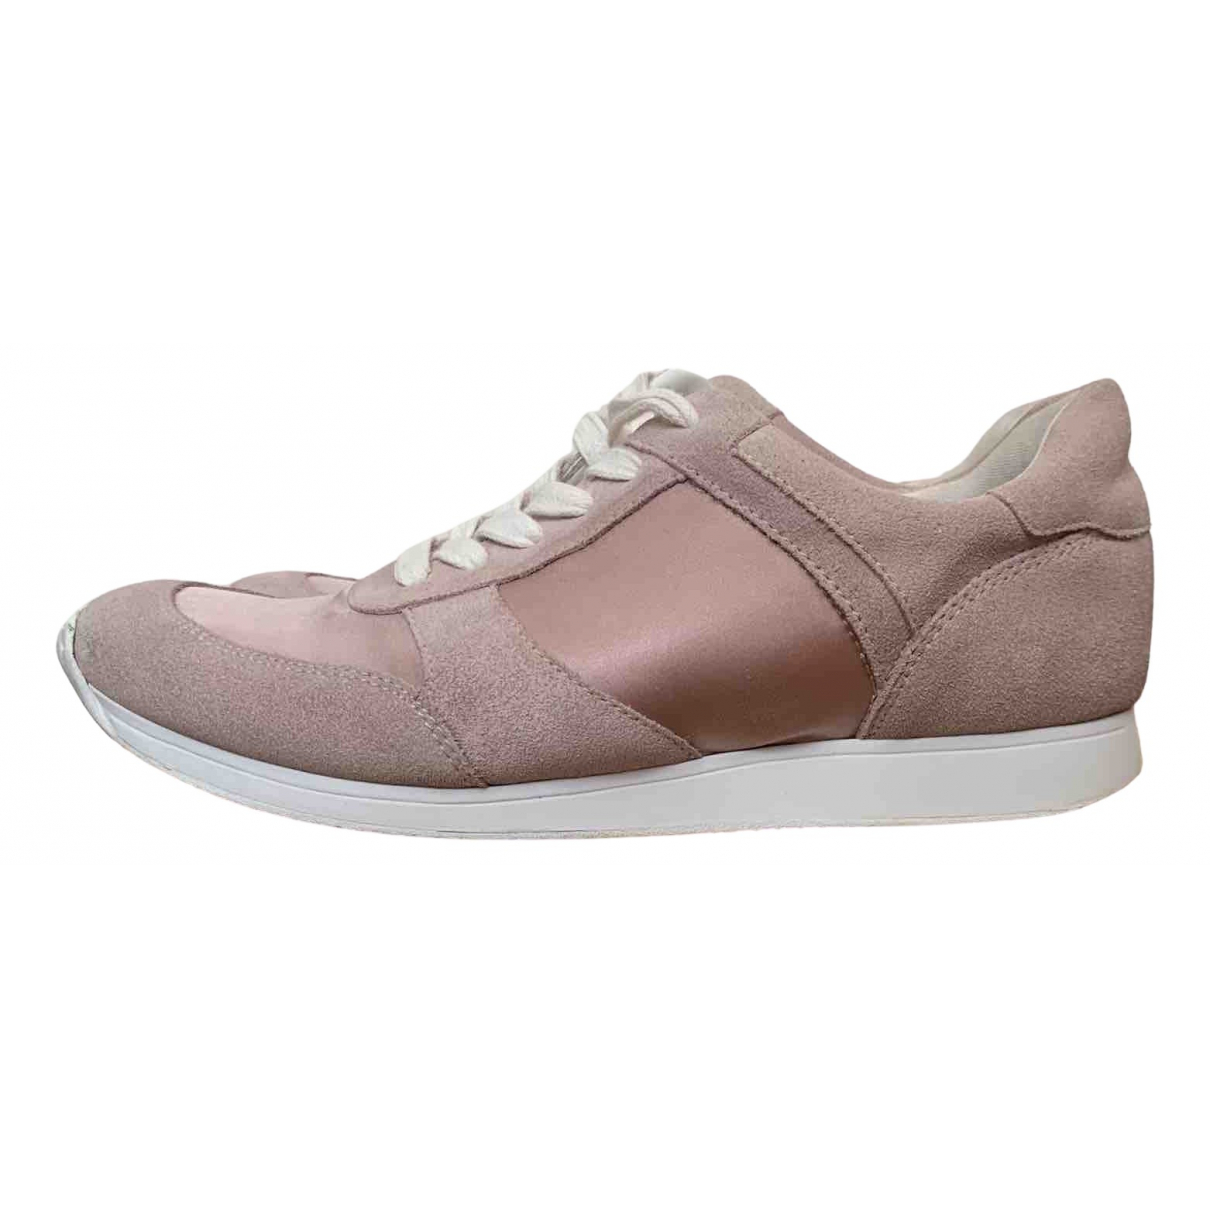 Vagabond \N Pink Suede Trainers for Women 37 EU